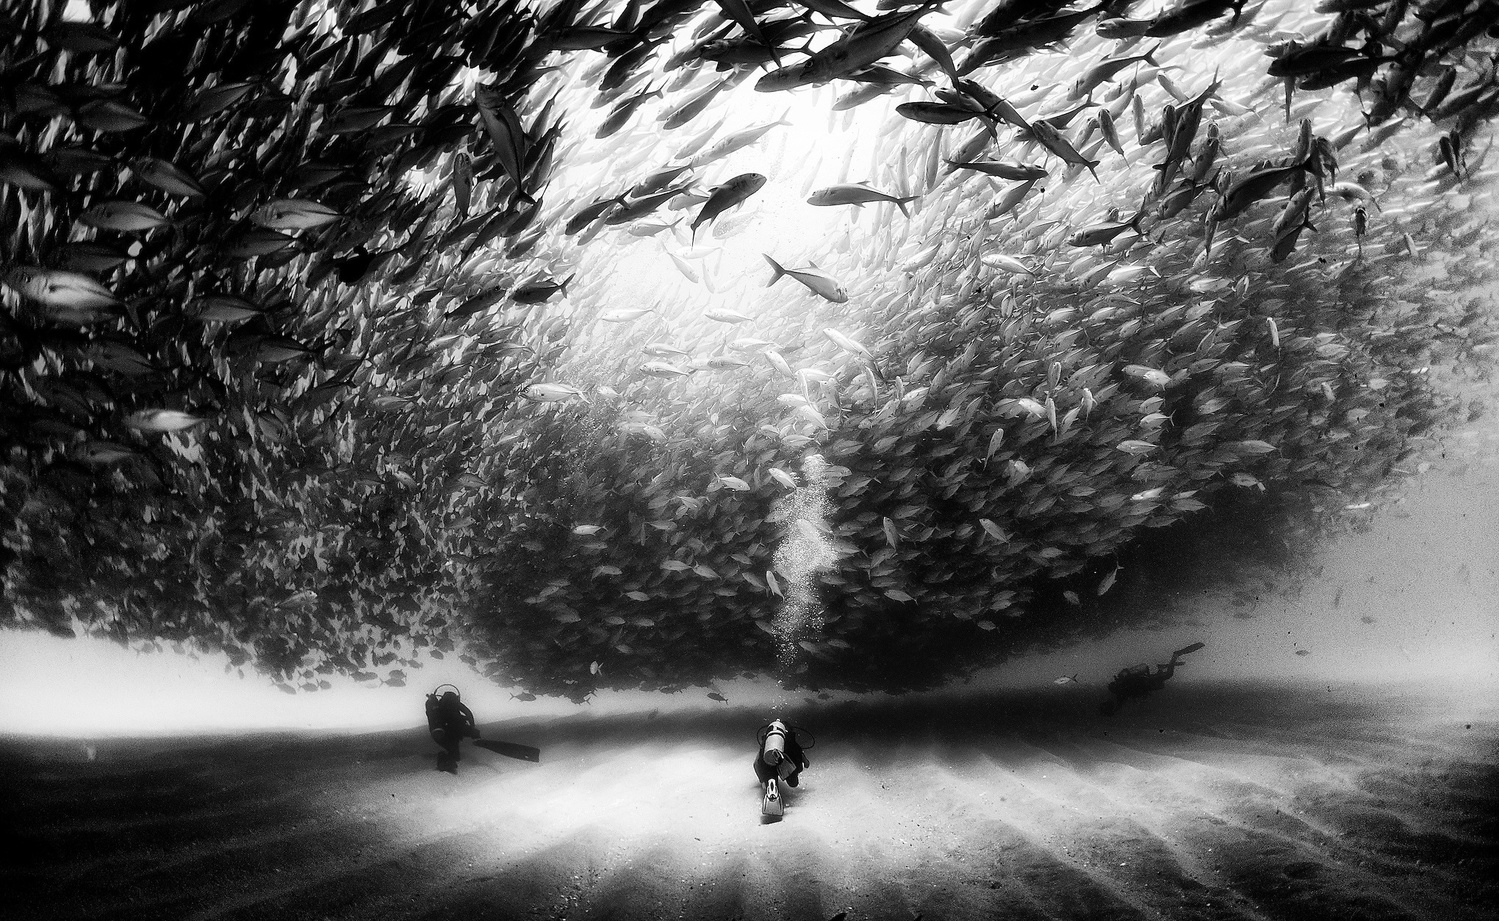 Floriuk shows us a black and white underwater world where shoals of fish huge whales and apex predators capture our imagination